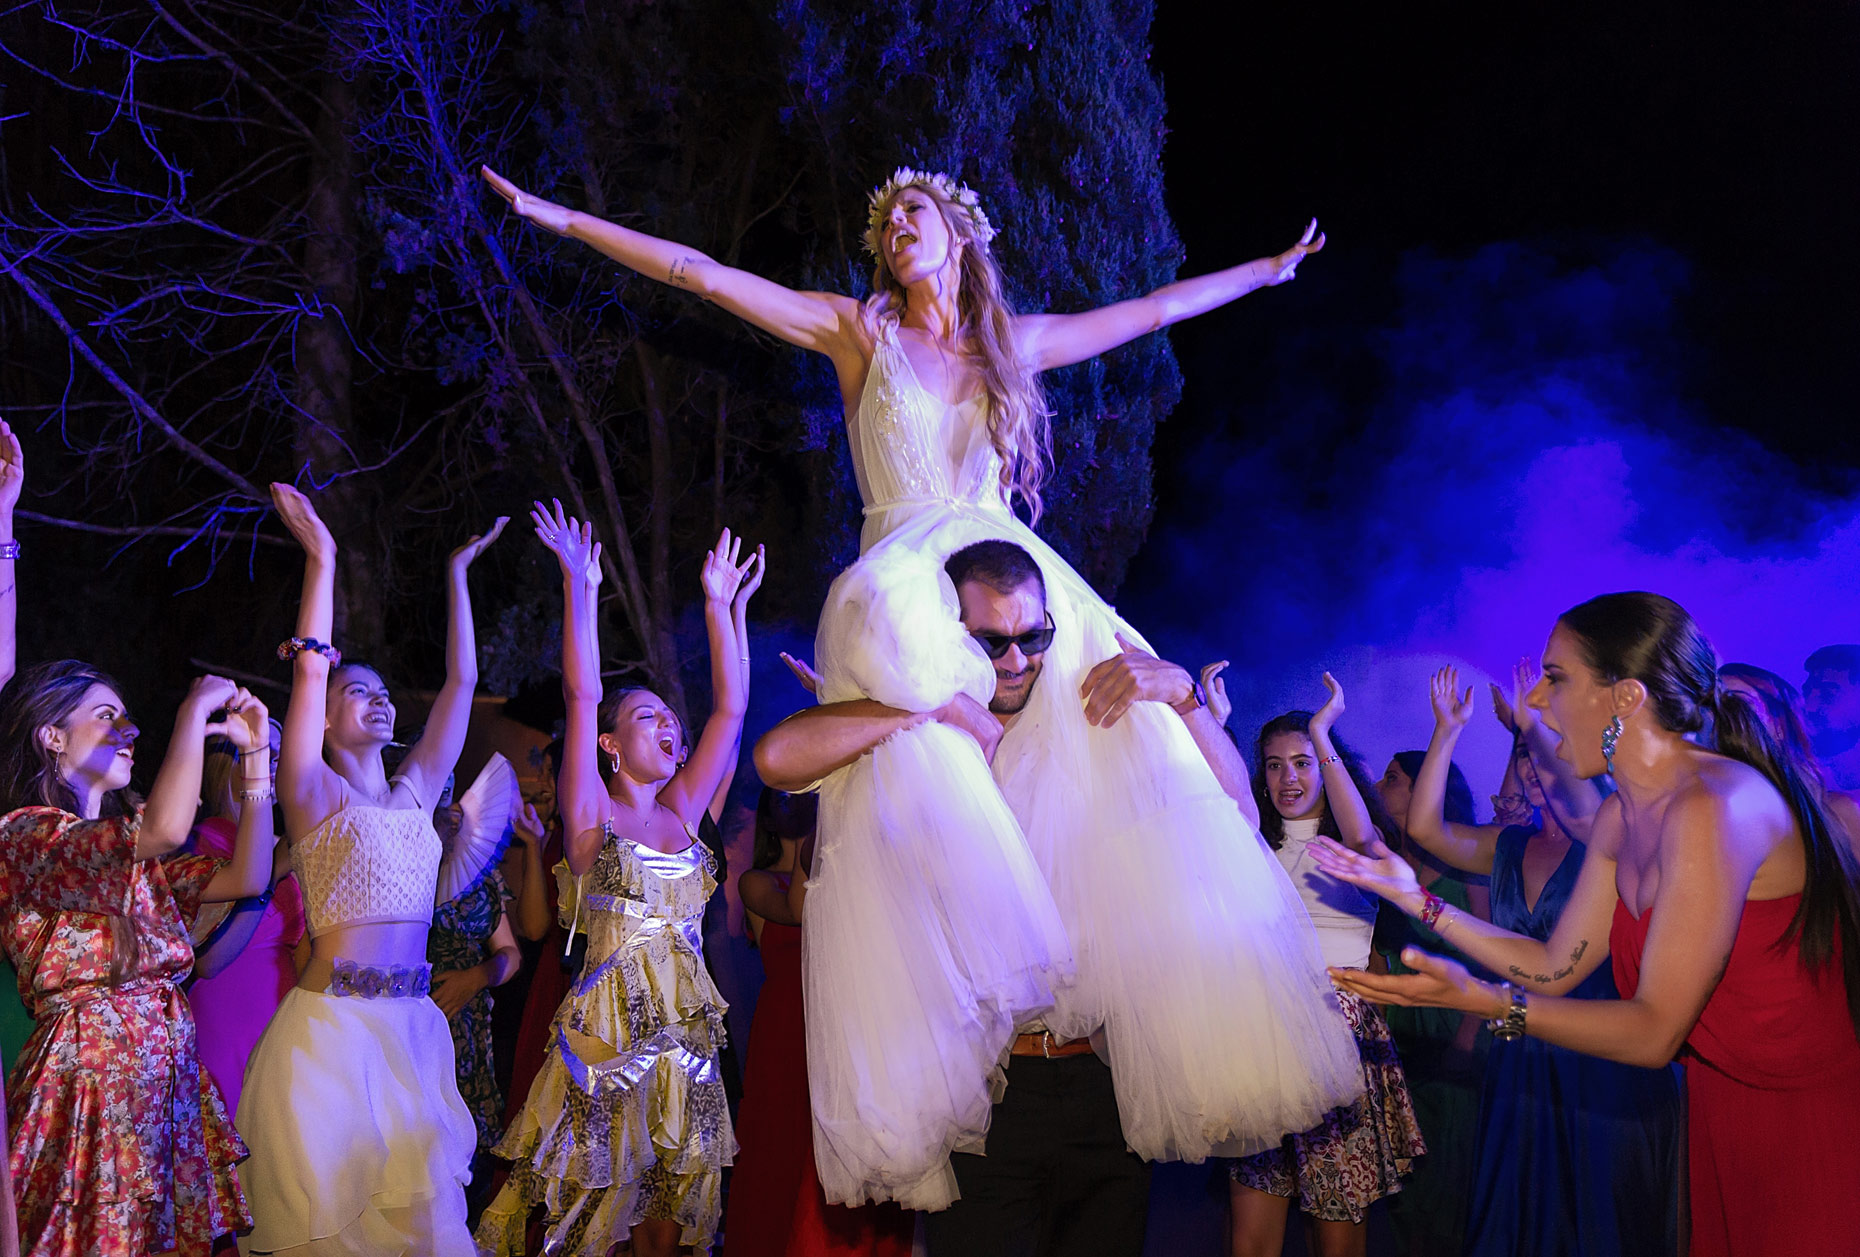 dancing in wedding party in Greece corfu